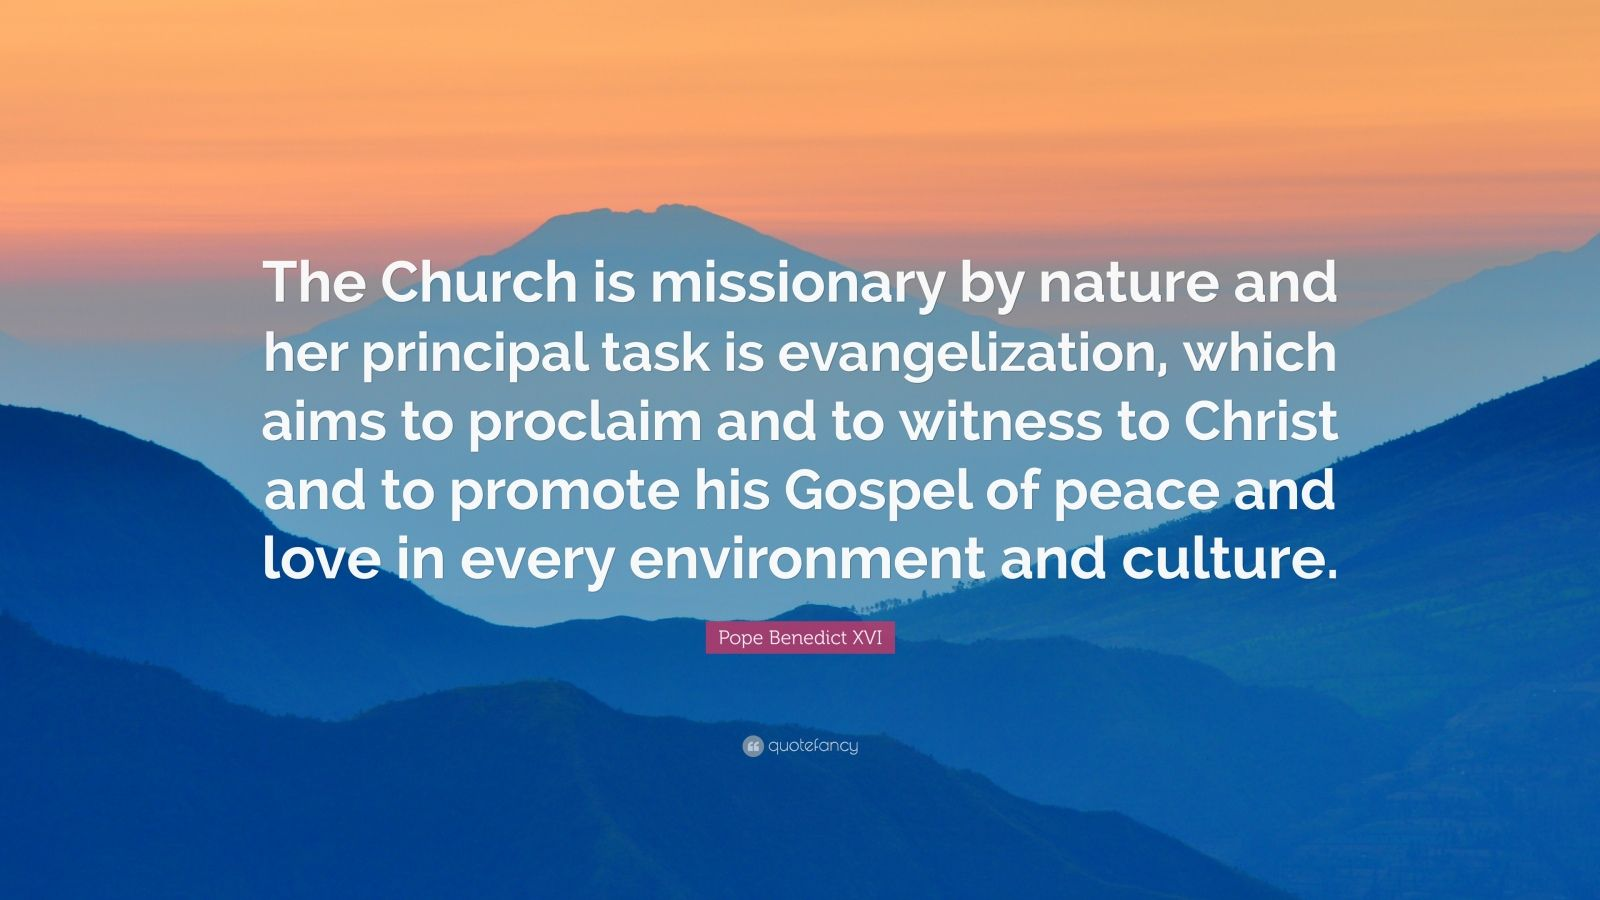 """Pope Benedict XVI Quote: """"The Church is missionary by nature and her principal task is evangelization, which aims to proclaim and to witness to Christ and to promote his Gospel of peace and love in every environment and culture."""""""